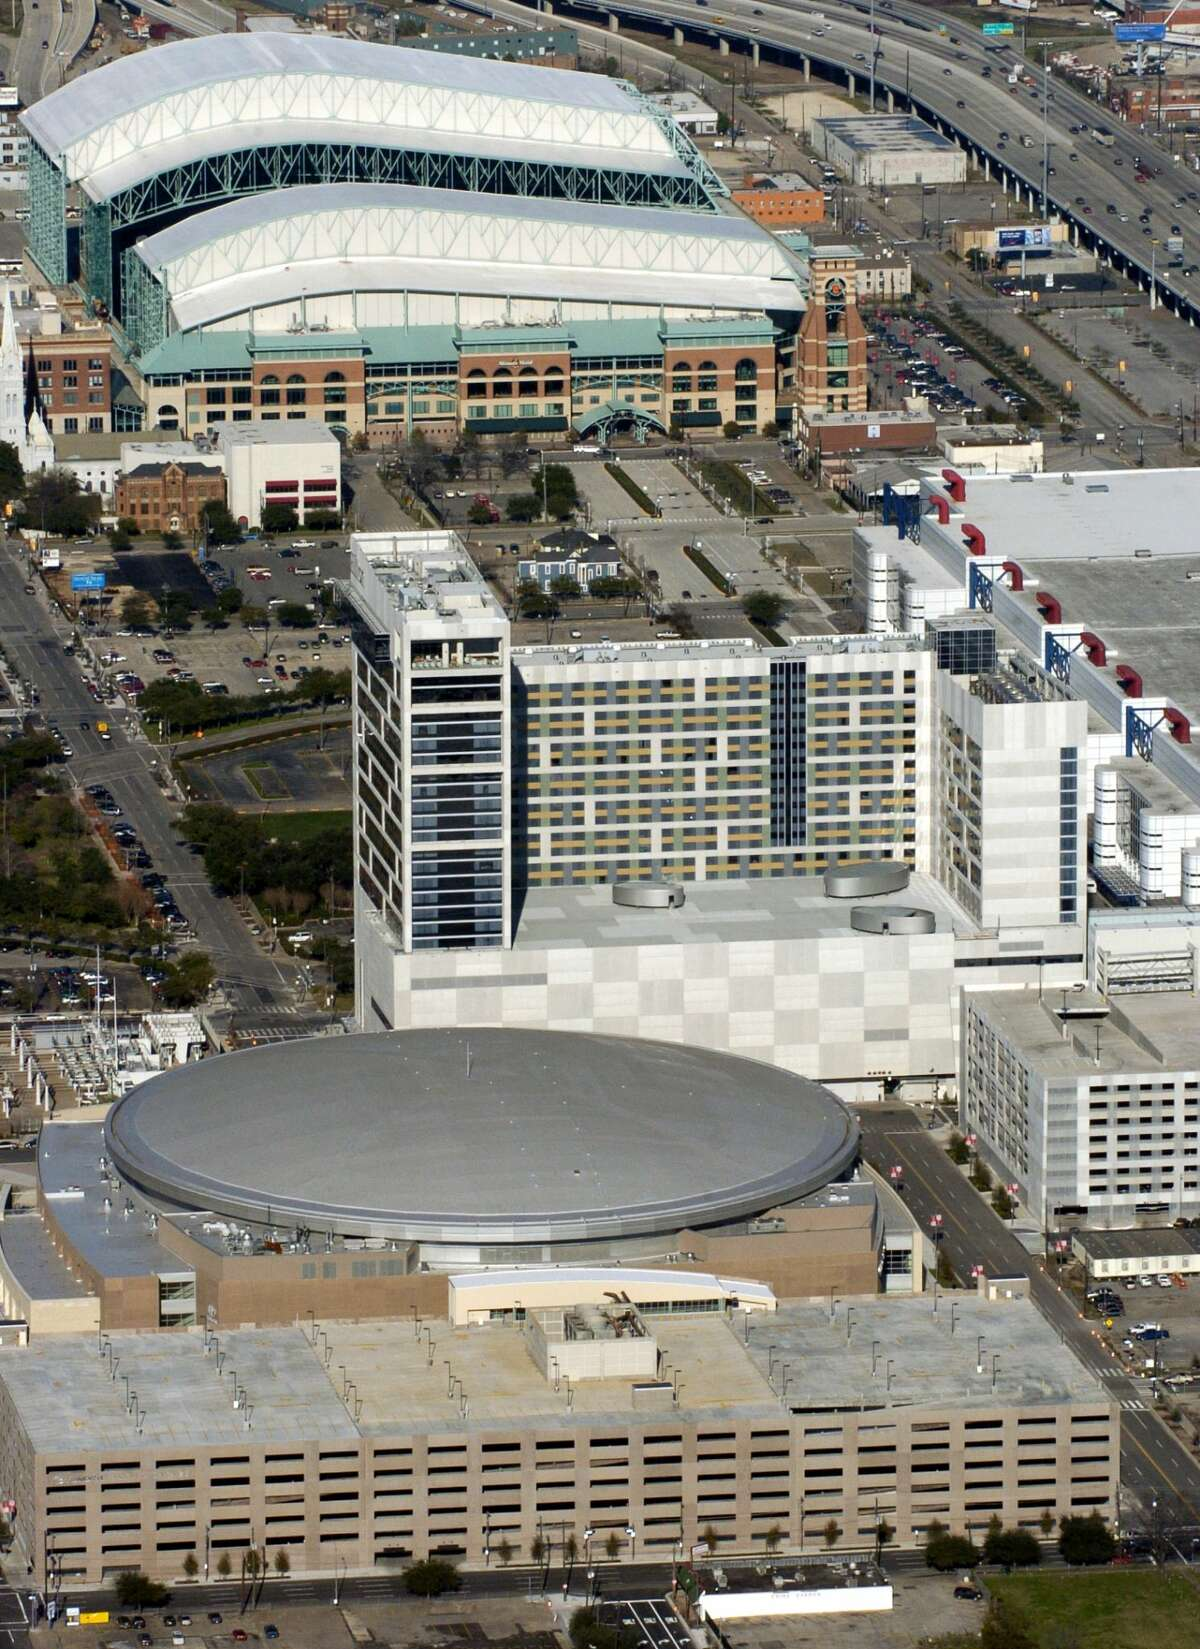 The Toyota Center (foreground) the Hilton Americas Houston and new addition to the George R. Brown Convention Center (center) and Minute Maid Field (with shiny white roof - back) along the east side of downtown. 1/19/2004 (Karl Stolleis/Houston Chronicle) HOUCHRON CAPTION (10/10/2004) SECOUTLOOK COLORFRONT: ROOM GLUT: A proposal to turn the Astrodome into a convention center hotel could threaten the viability of the Hilton Americas Houston Hotel, say some observers.